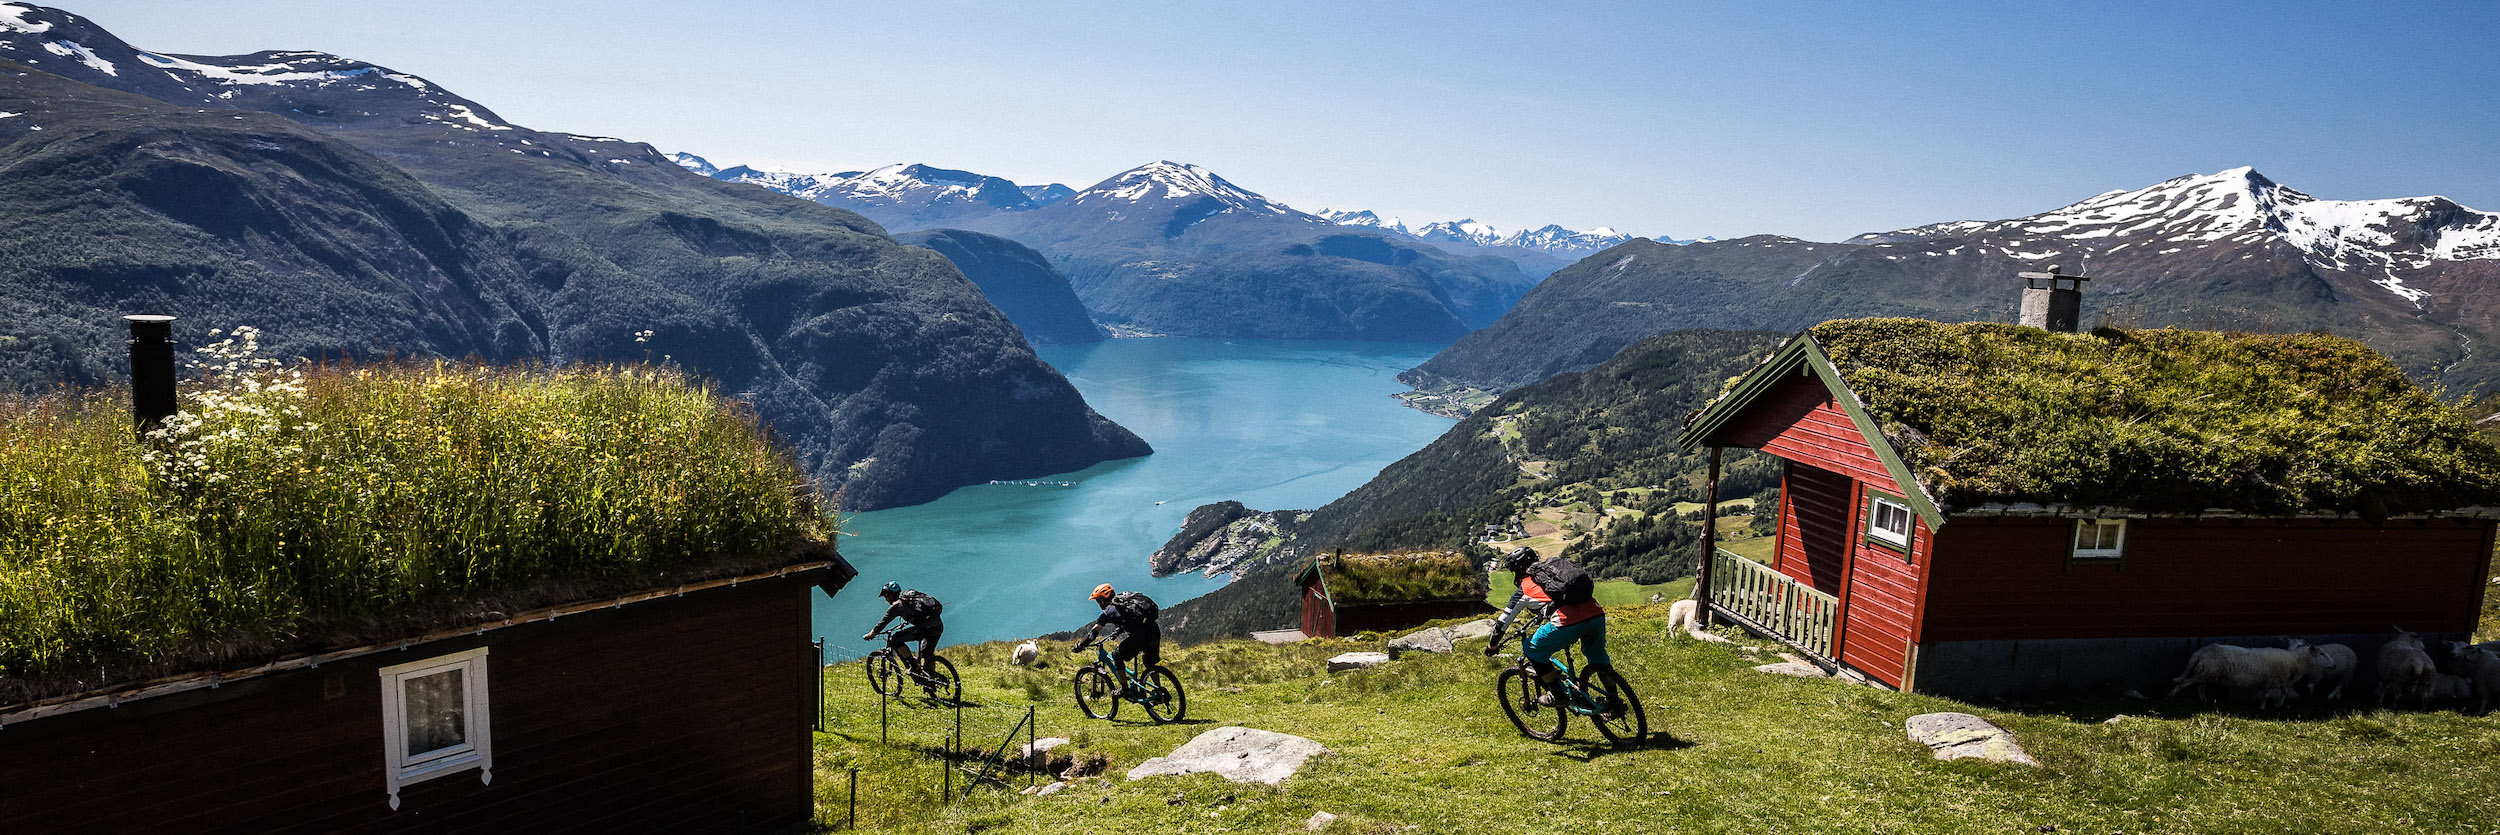 Descending to the fjords in Norway, mountain bike tours